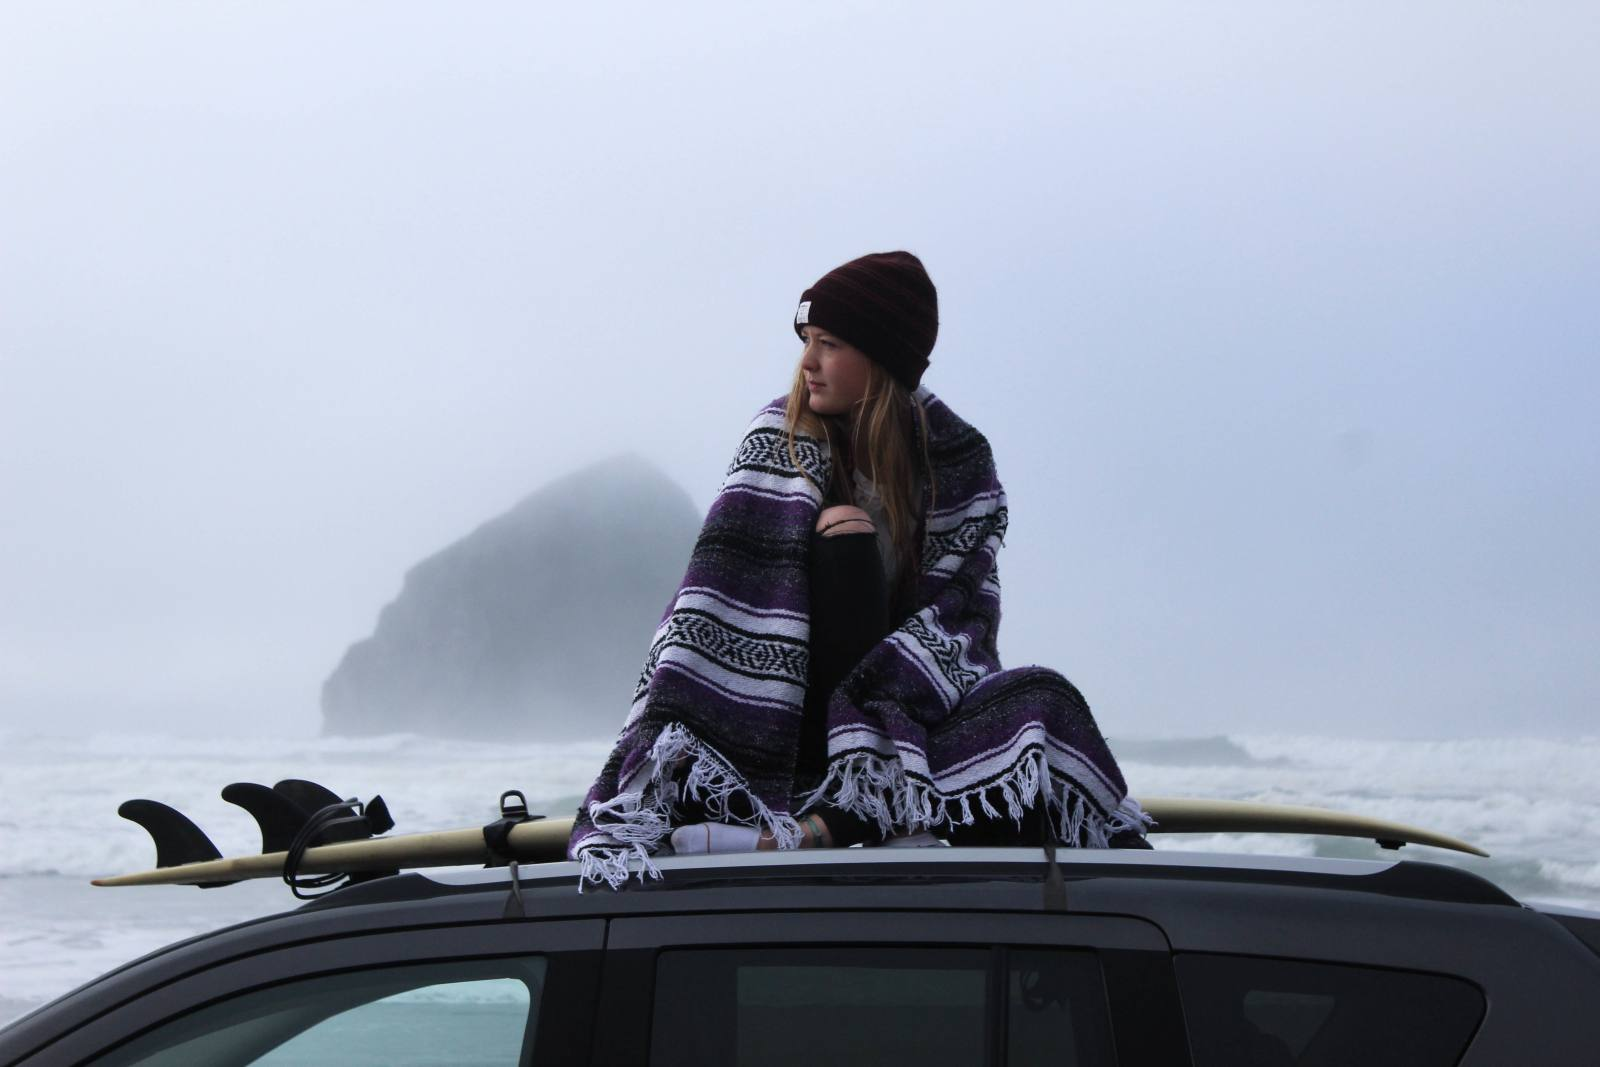 woman sitting on car while wearing hat and shawl